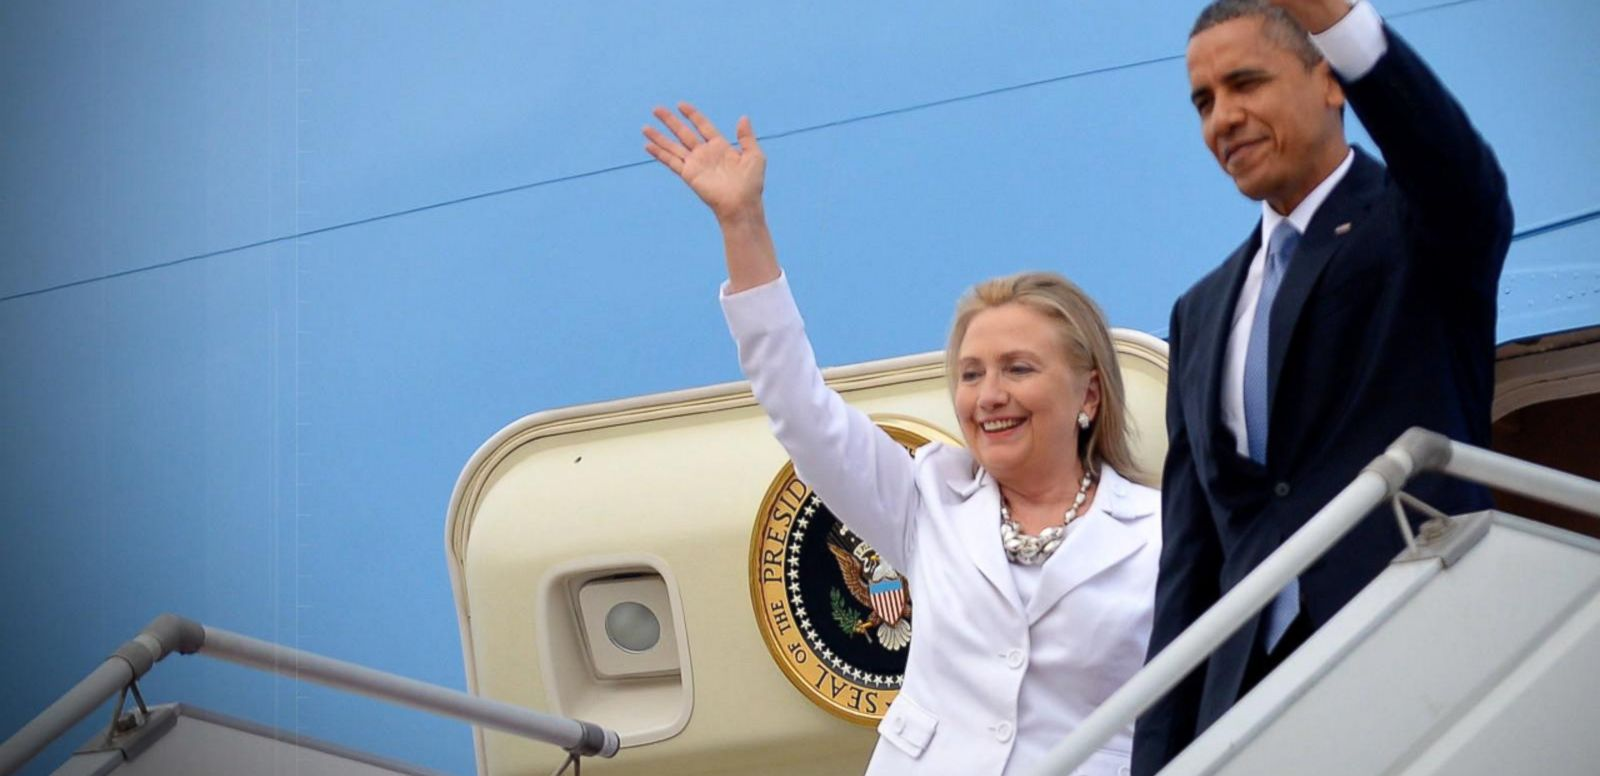 VIDEO: Will President Obama Rally Behind Hillary Clinton?